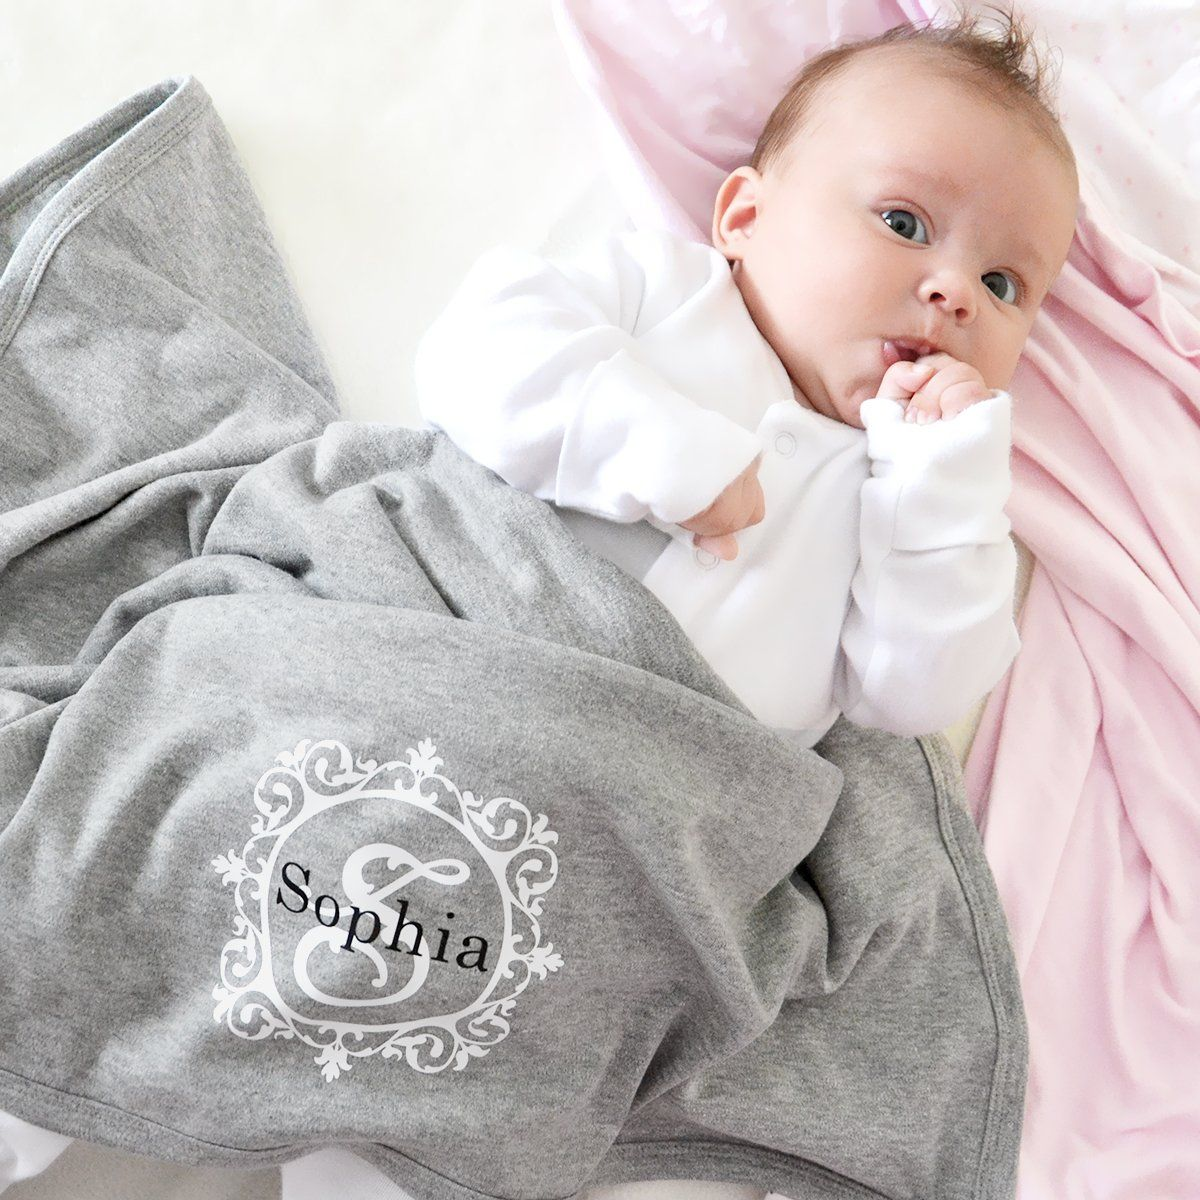 Personalised initial baby name blanket gorgegous grey pink or white personalised initial baby name blanket gorgegous grey pink or white new baby blanket personalised with their negle Image collections